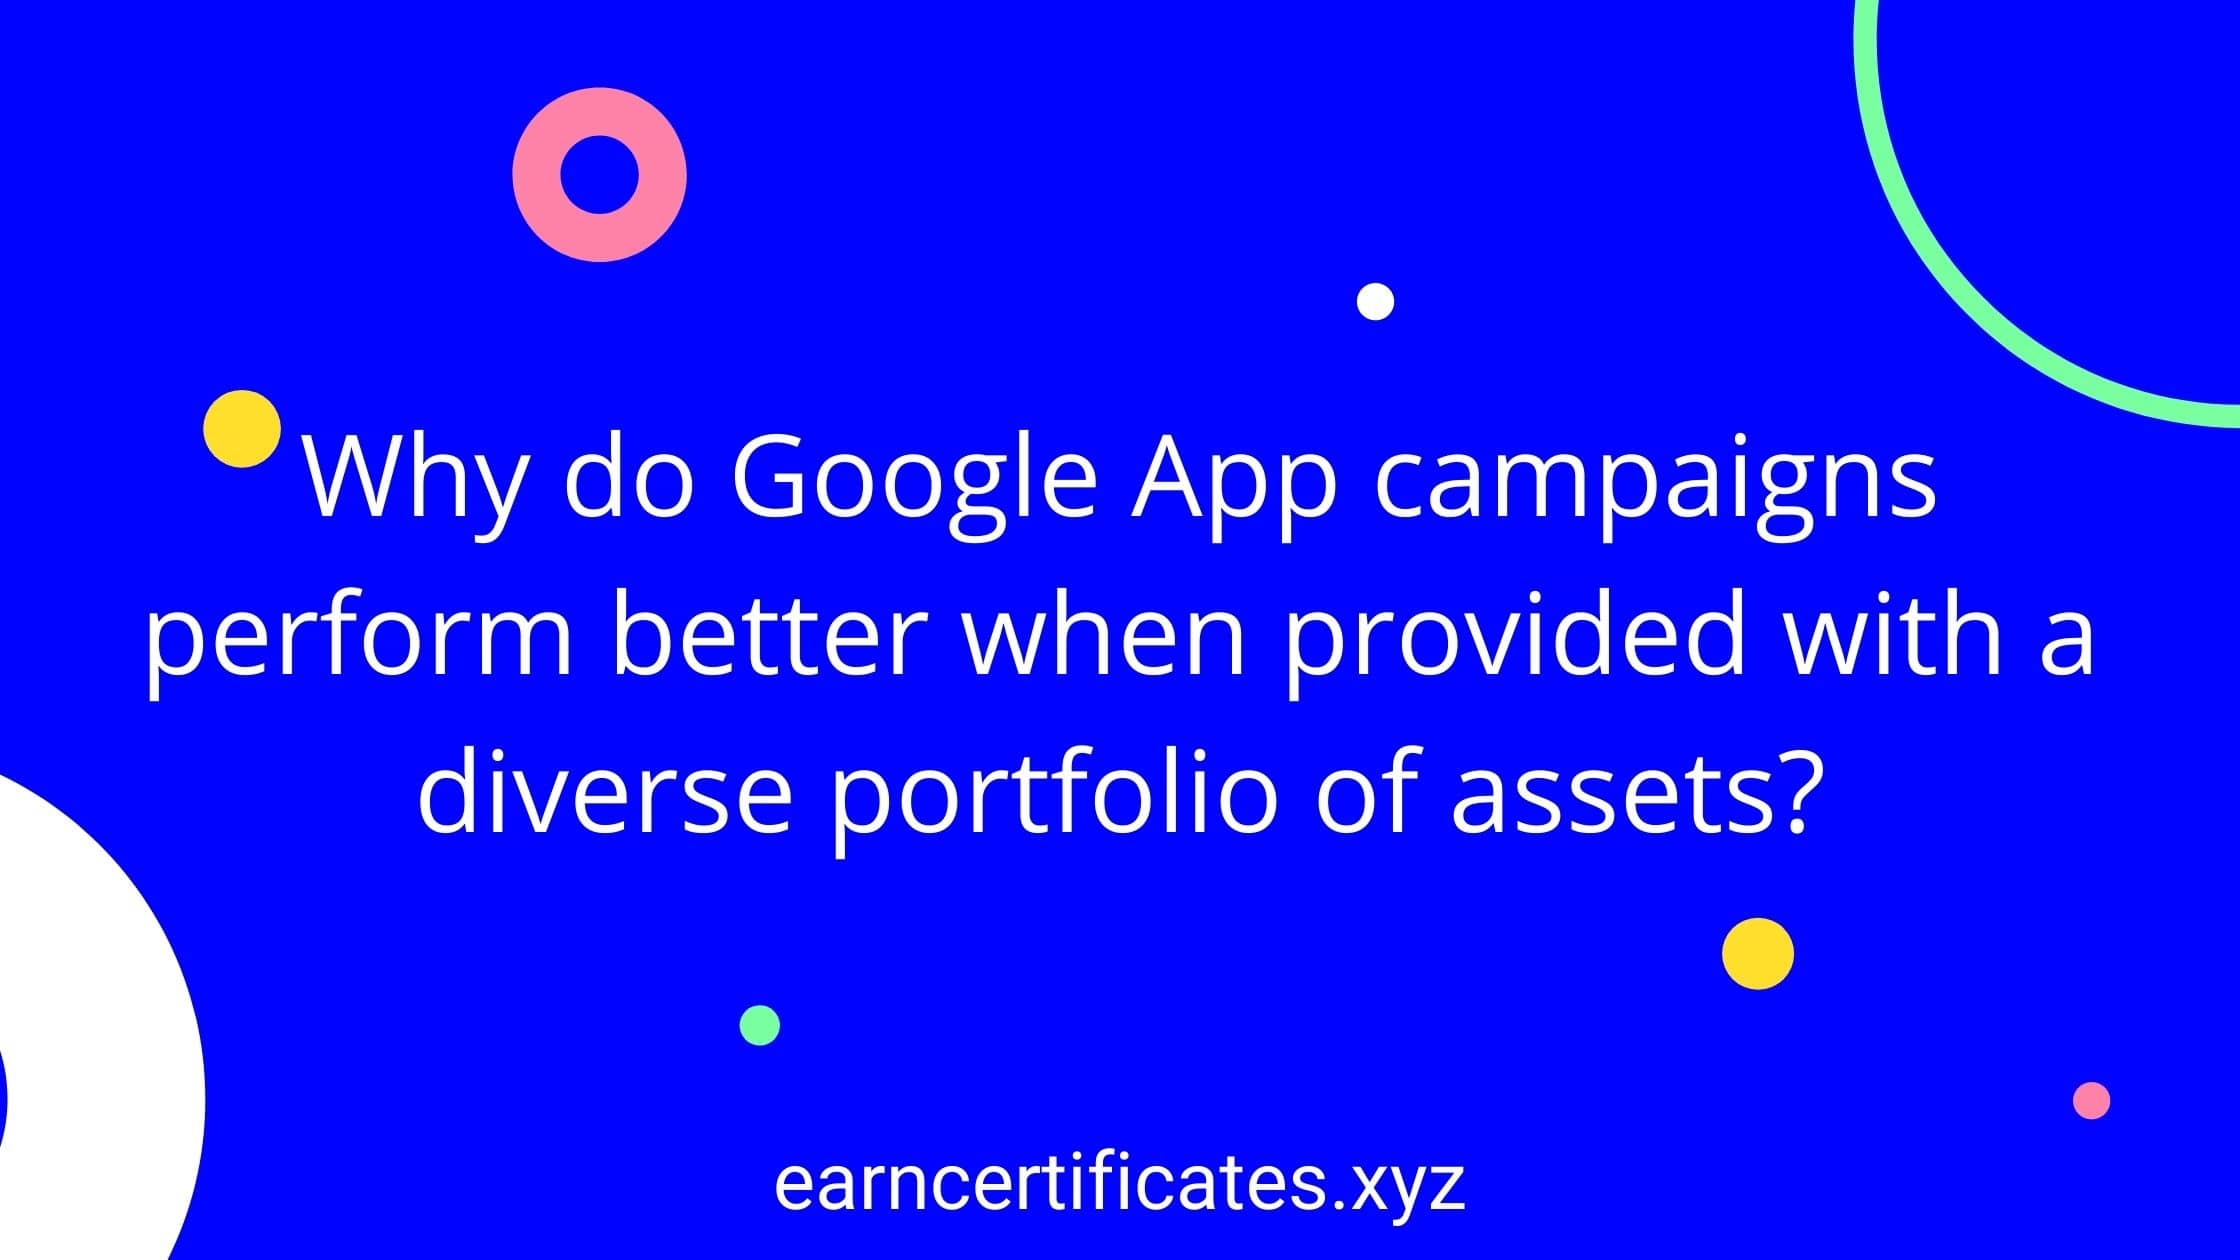 Why do Google App campaigns perform better when provided with a diverse portfolio of assets?